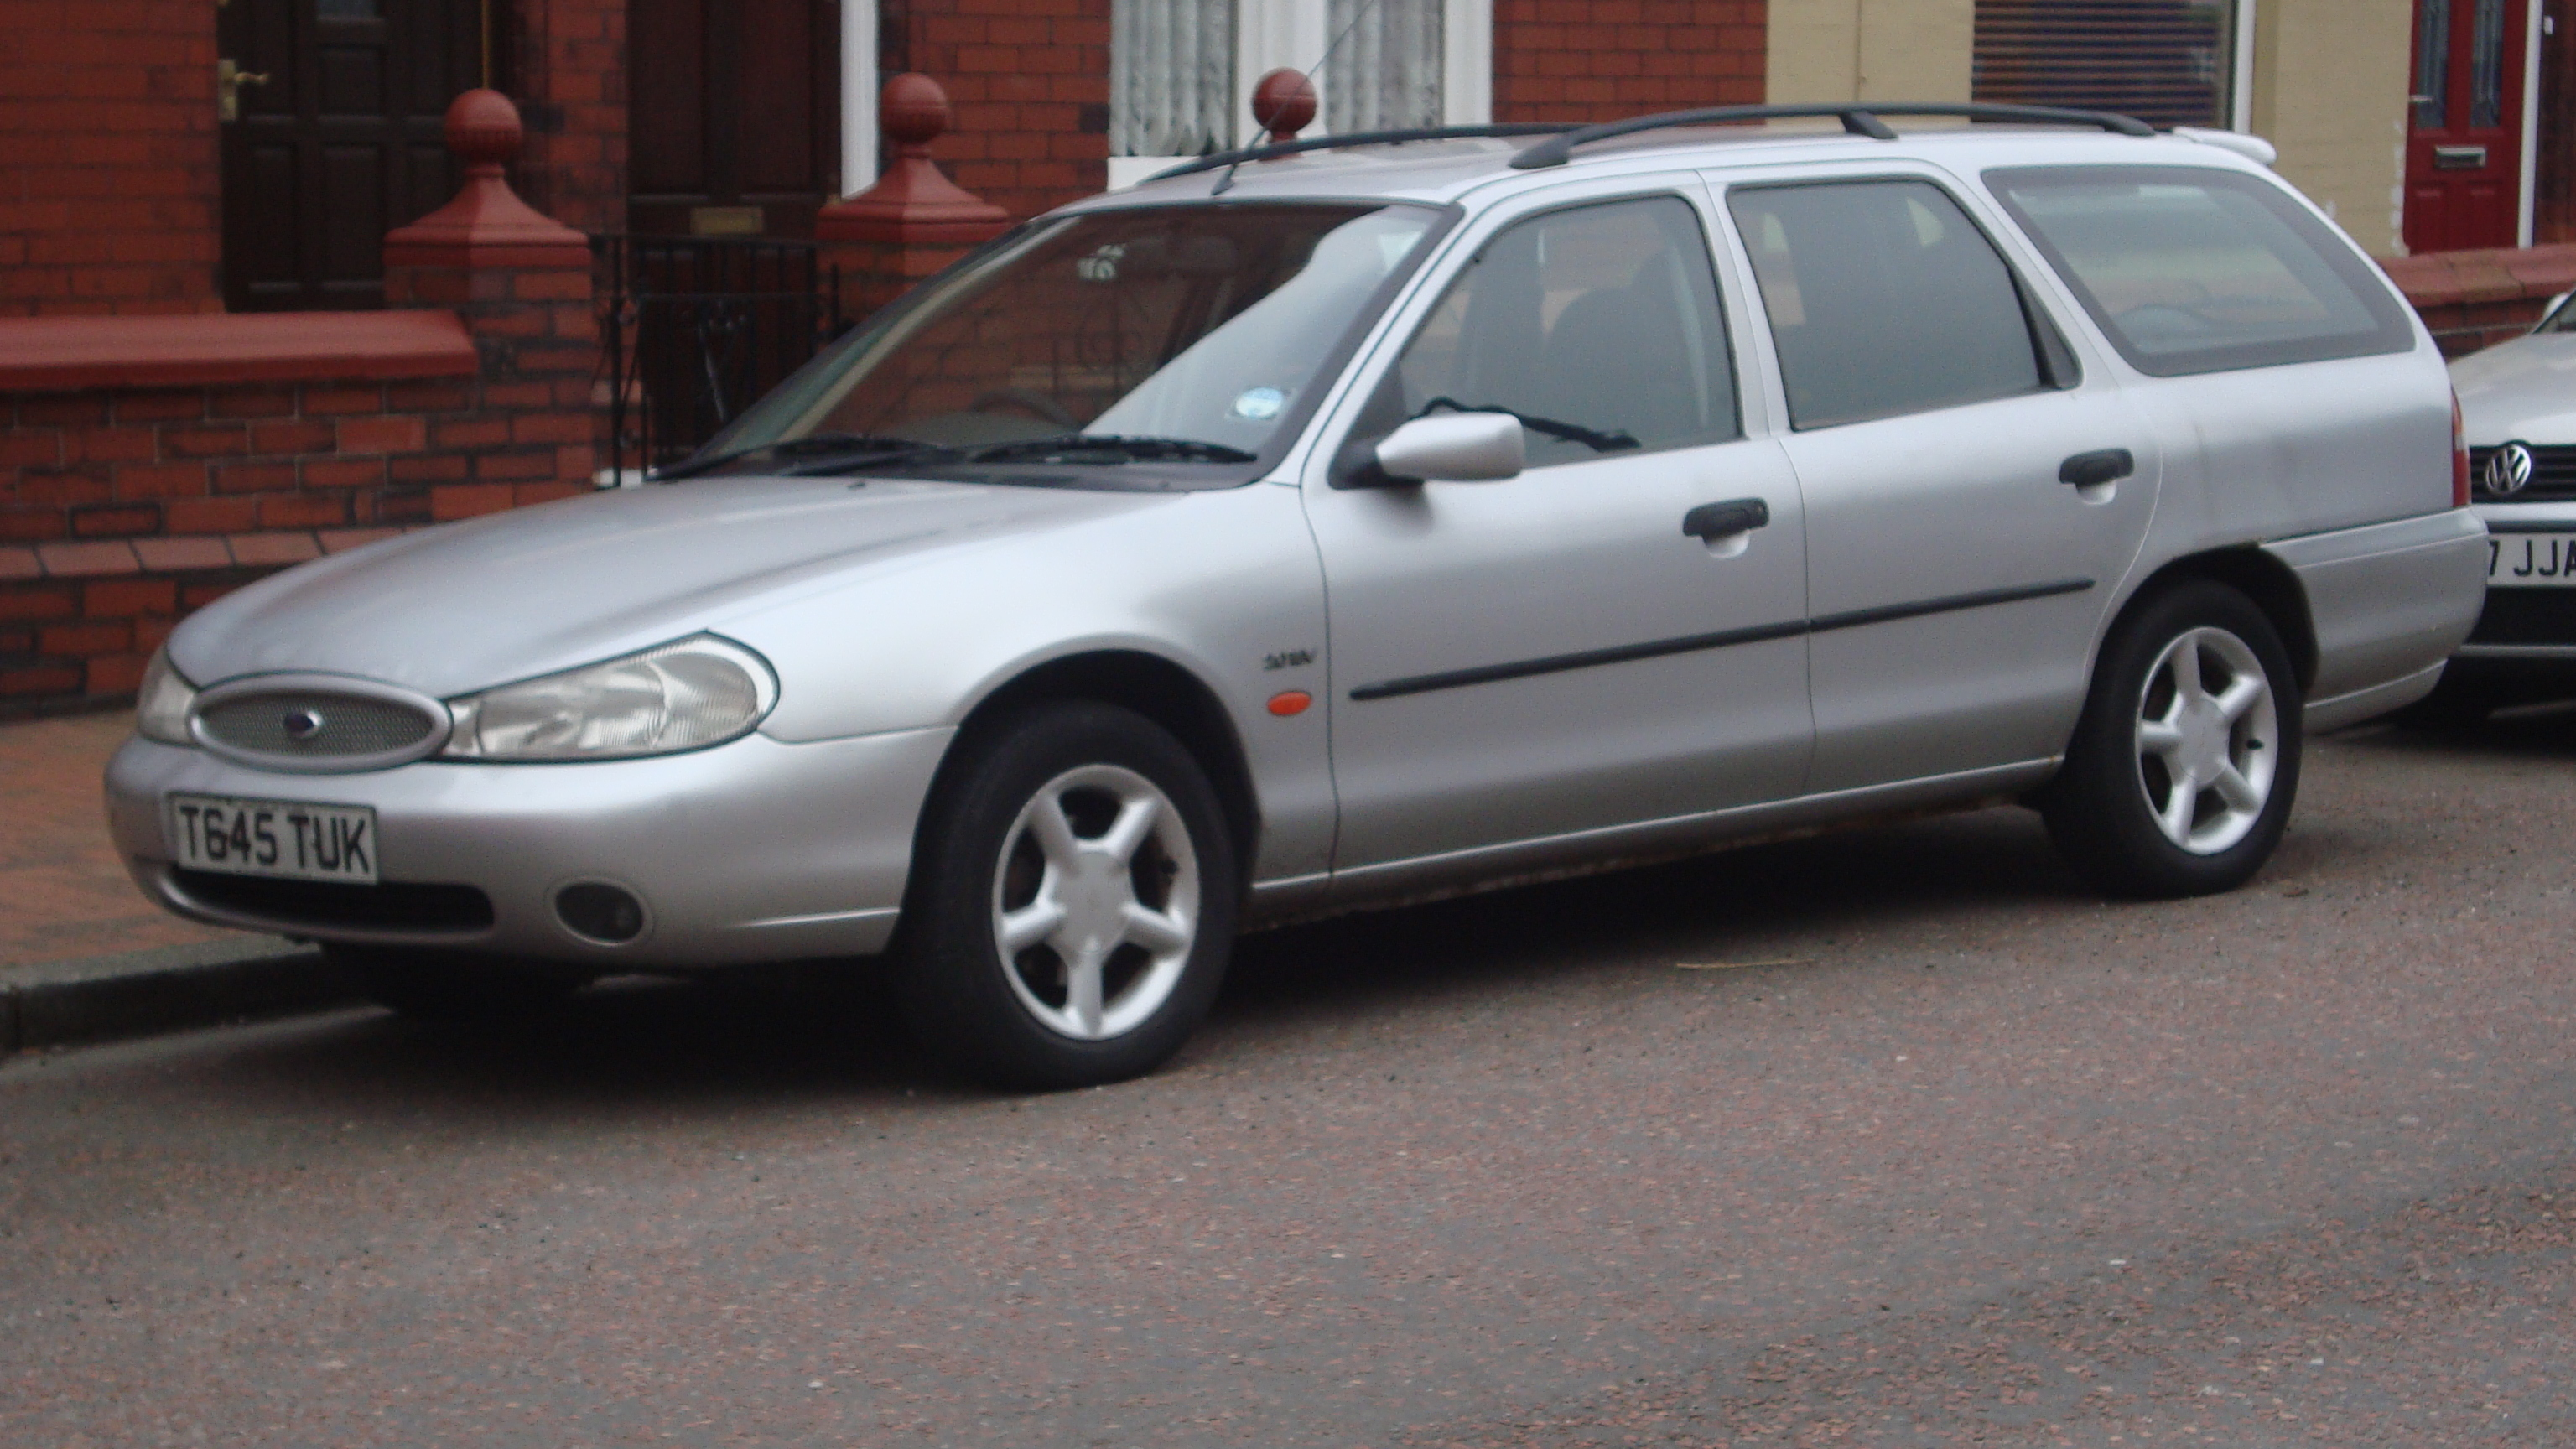 File:1999 Ford Mondeo 2.0 Zetec Estate (13147068575).jpg